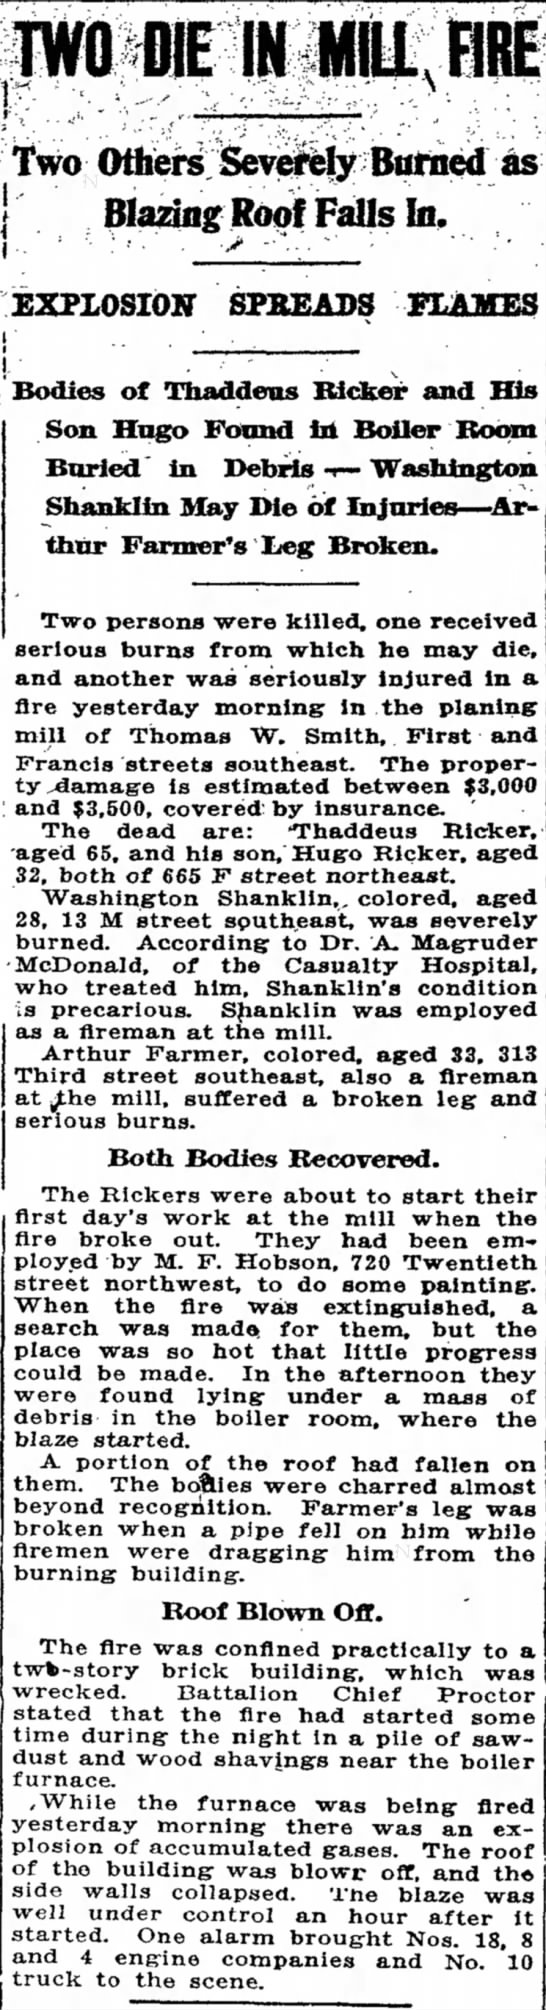 Two Die in Mill Fire